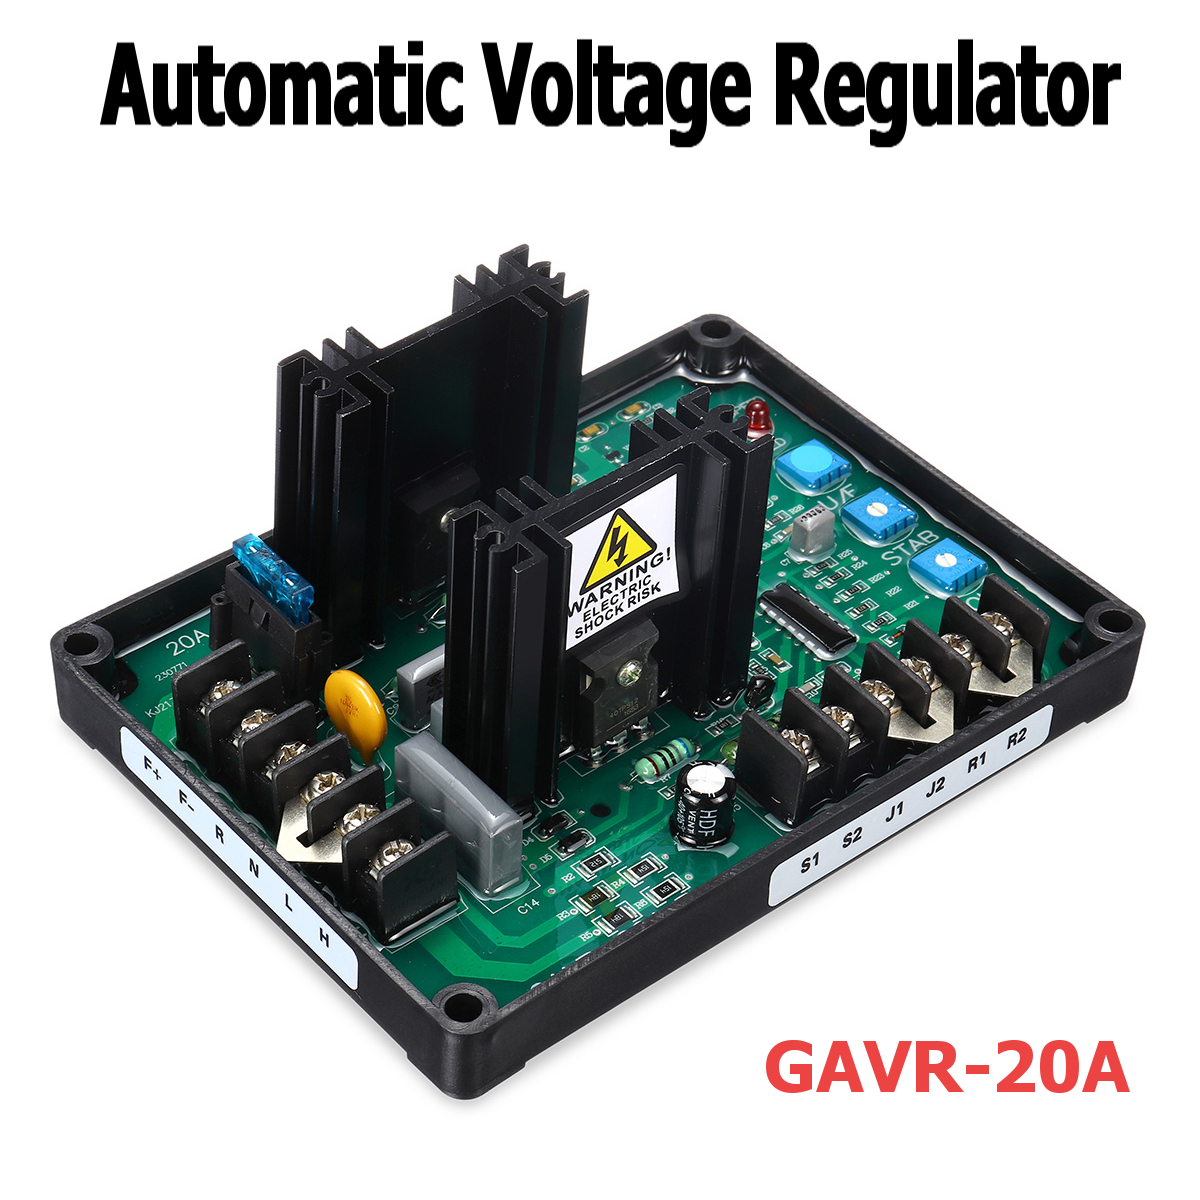 Automatic Voltage Regulator Module GAVR-20A AV Universal Brushless AVR Generator 220/400VAC Frequency Protection EMI Suppression смартфон xiaomi redmi note 5 64 гб розовое золото redmi note5 64gb rg